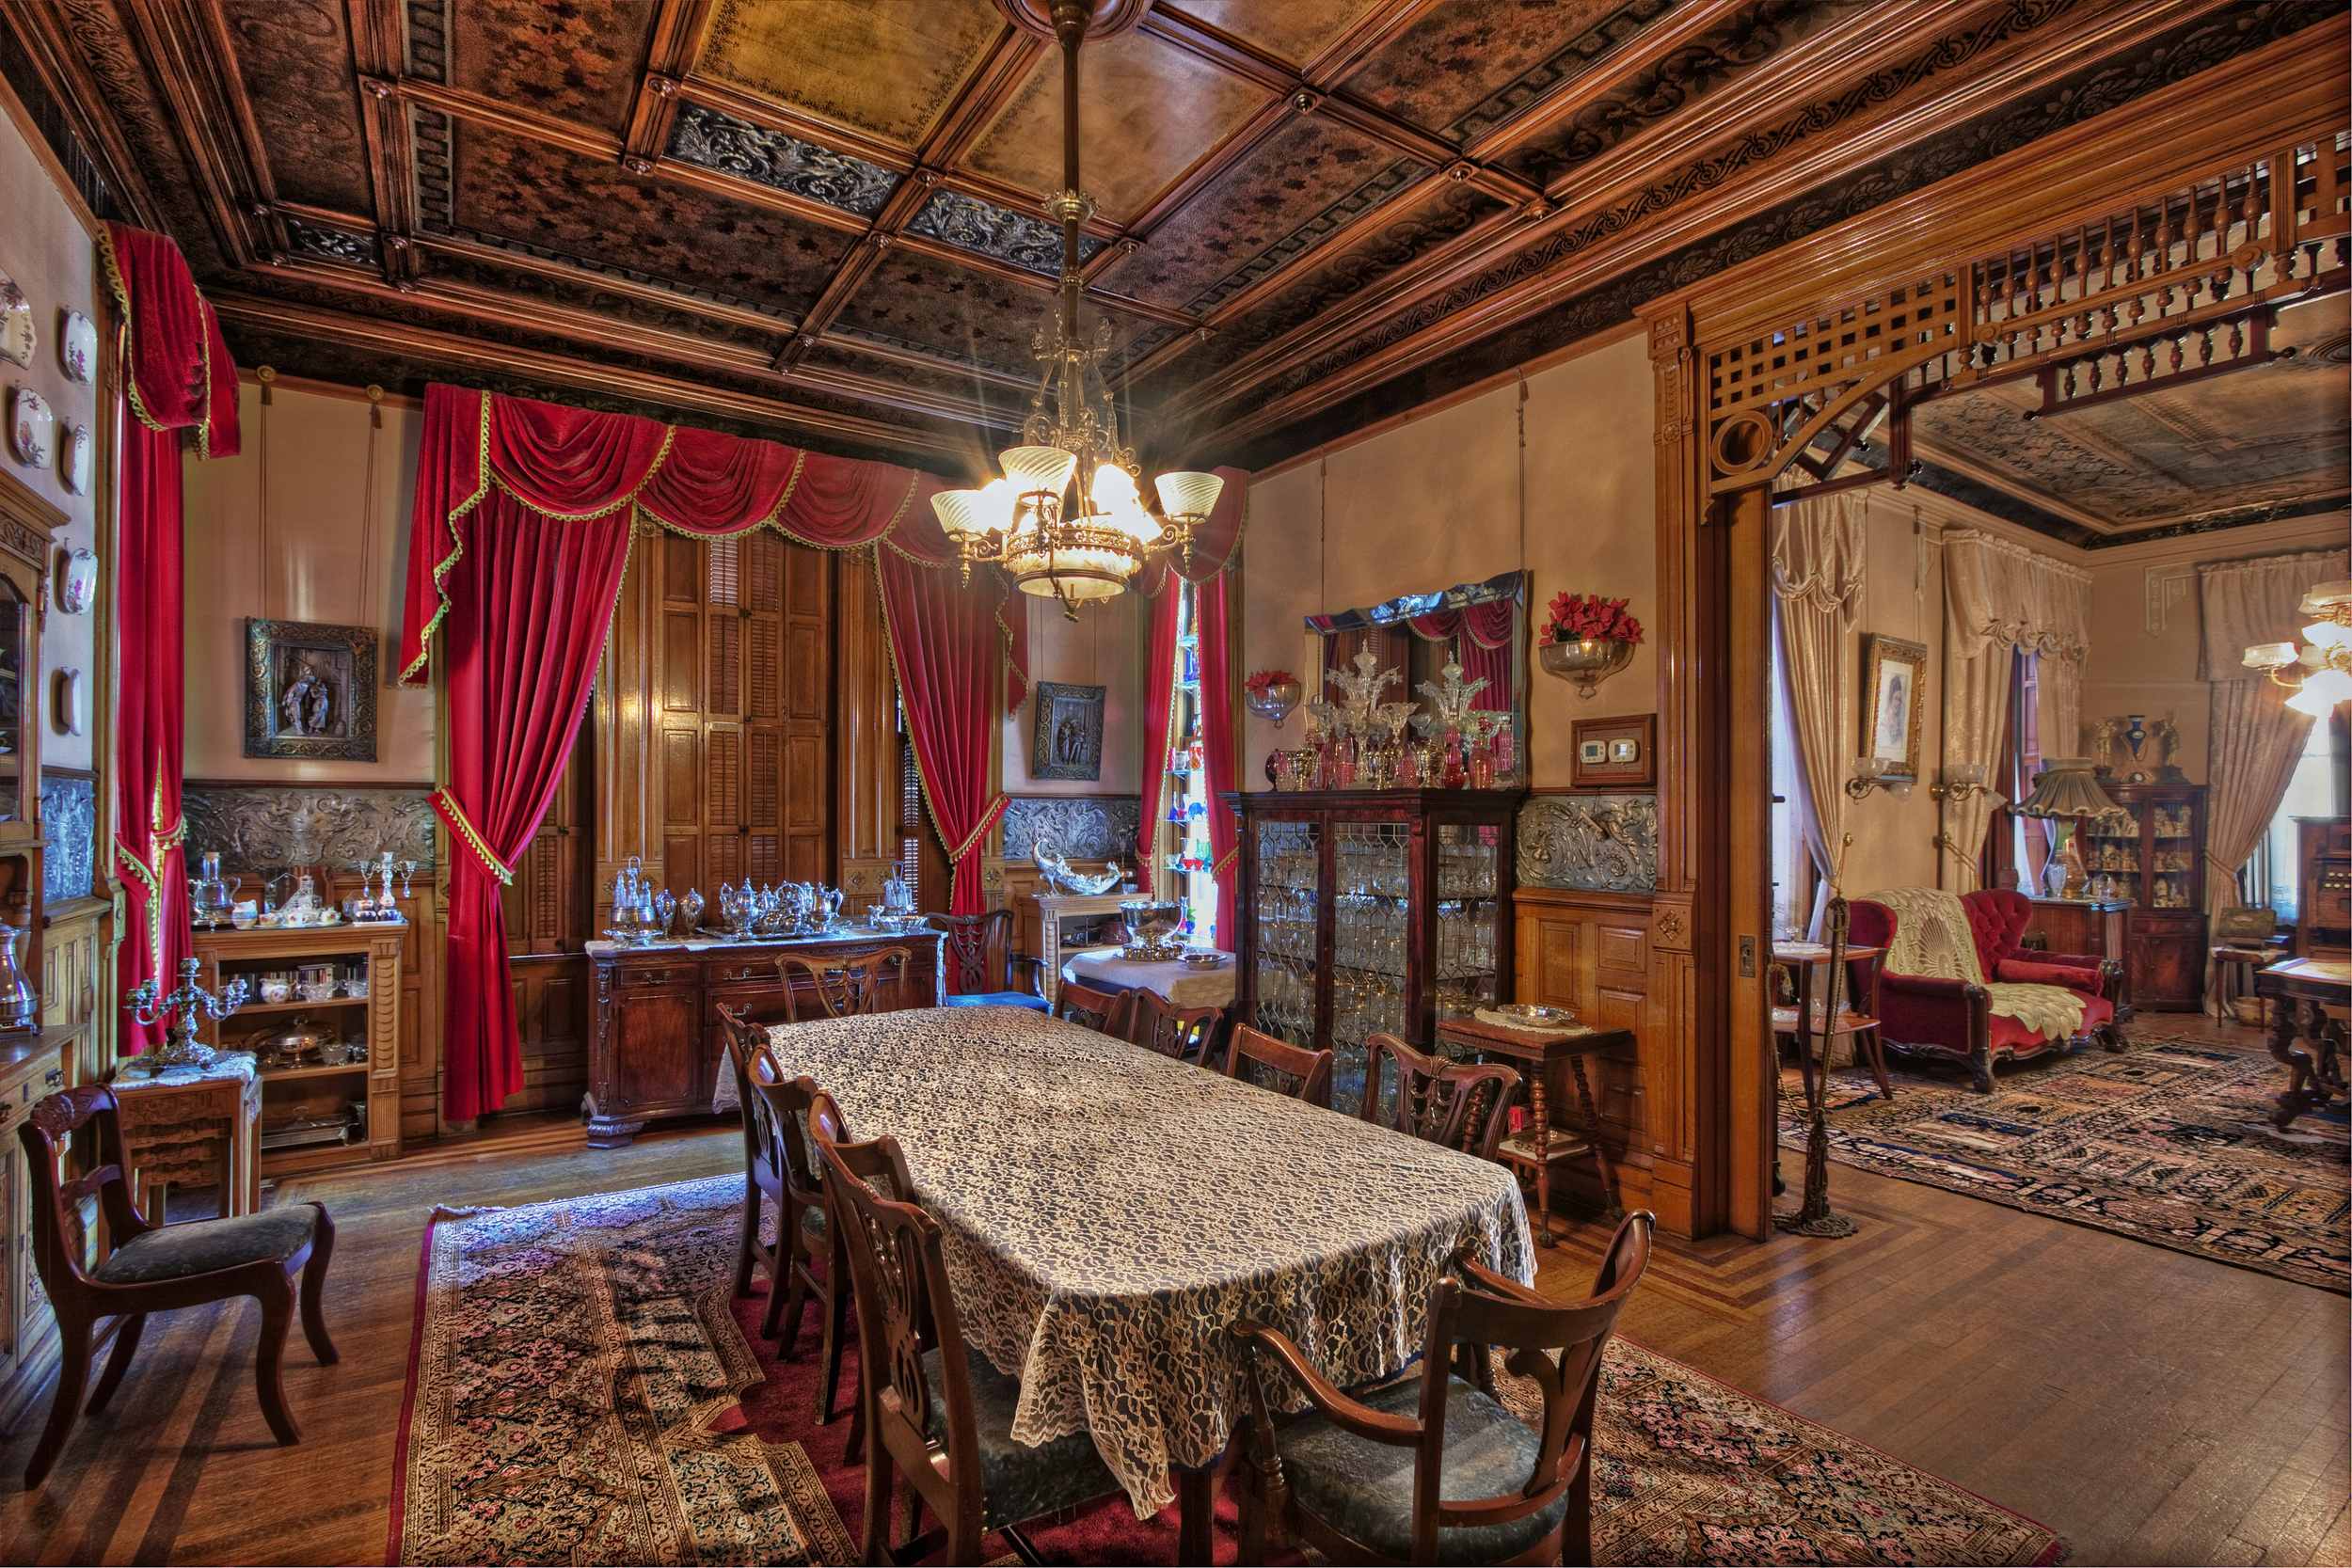 Dining room, Copper King Mansion, the W.A. Clark home in Butte, Montana. From the dining room, floor-to-ceiling windows led to a wraparound porch, allowing the men to step out to smoke cigars while discussing business and politics.c. Daniel Hagerman. Prints for sale at http://fineartamerica.com/art/all/copper+king+mansion/all.